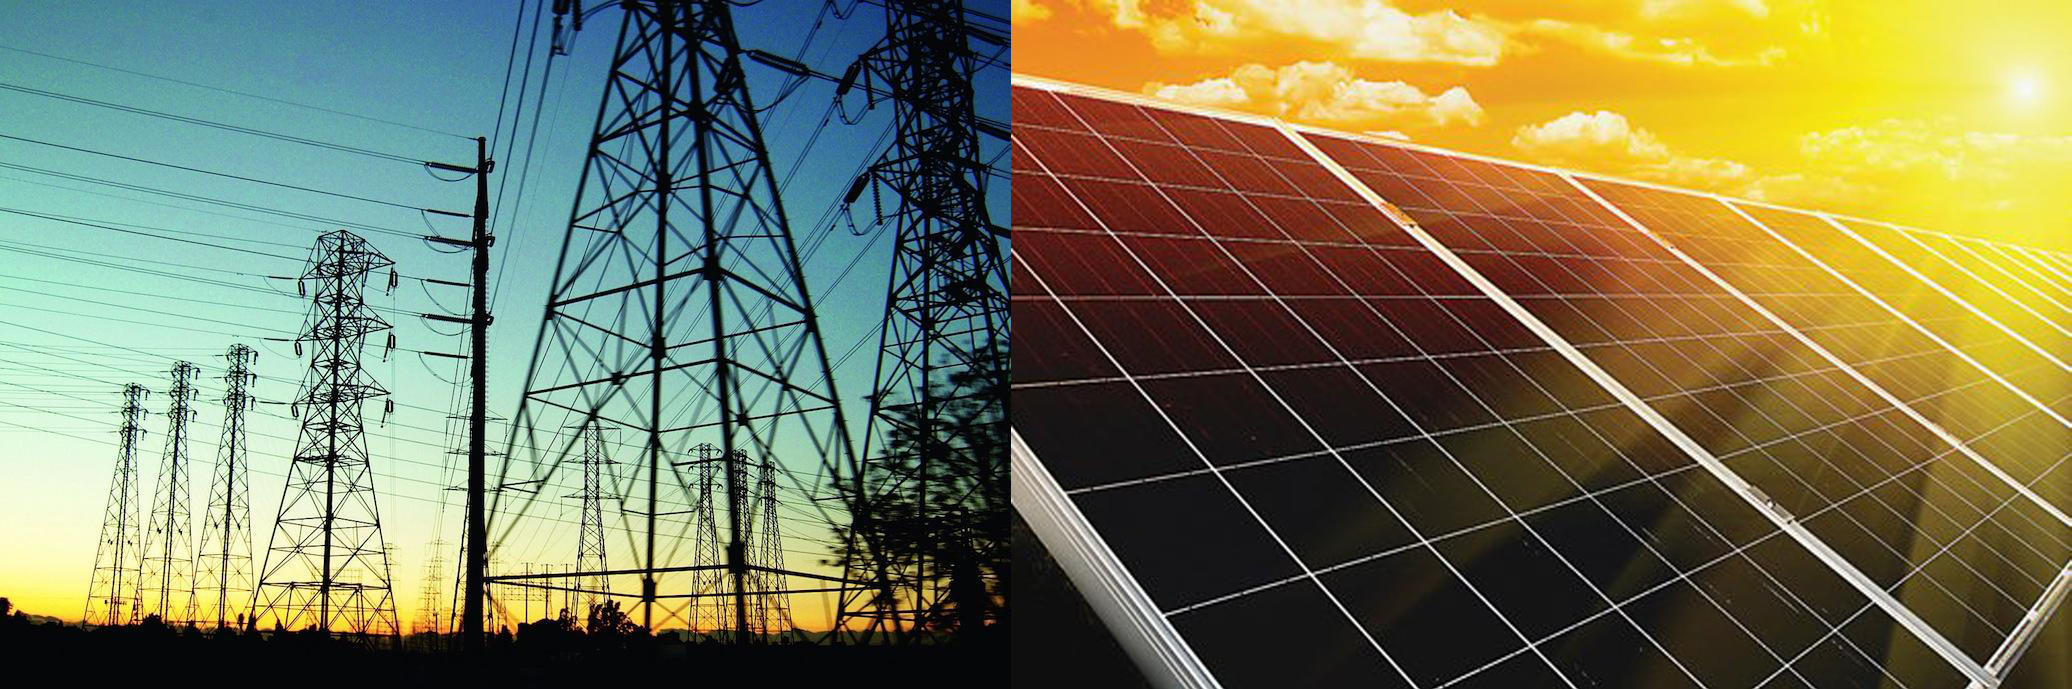 Beximco and TBEA 200MWP Solar Farm Power Station Project